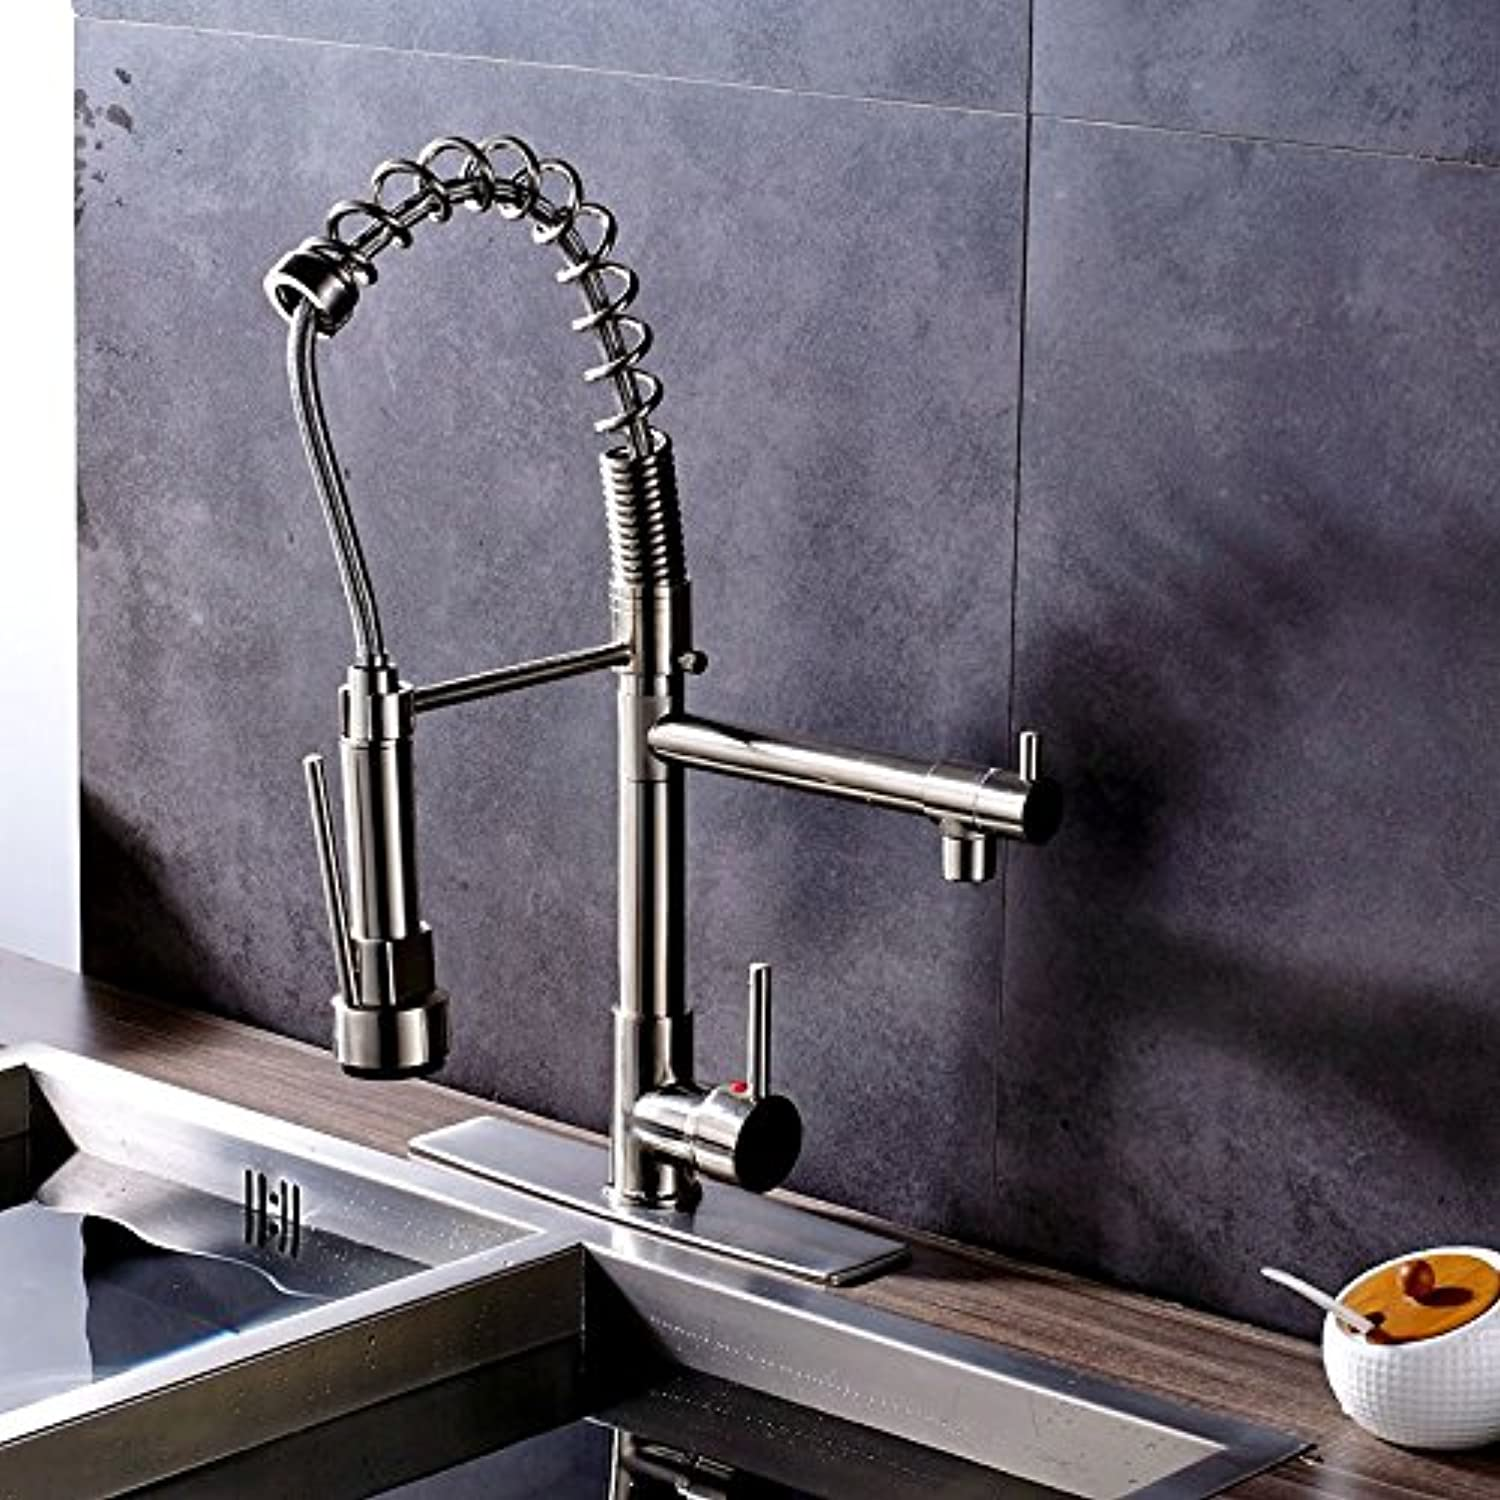 CZOOR Brushed Nickel Deck Mounted Kitchen Faucet Mixer Tap with Cover Plate Factory Direct Sale